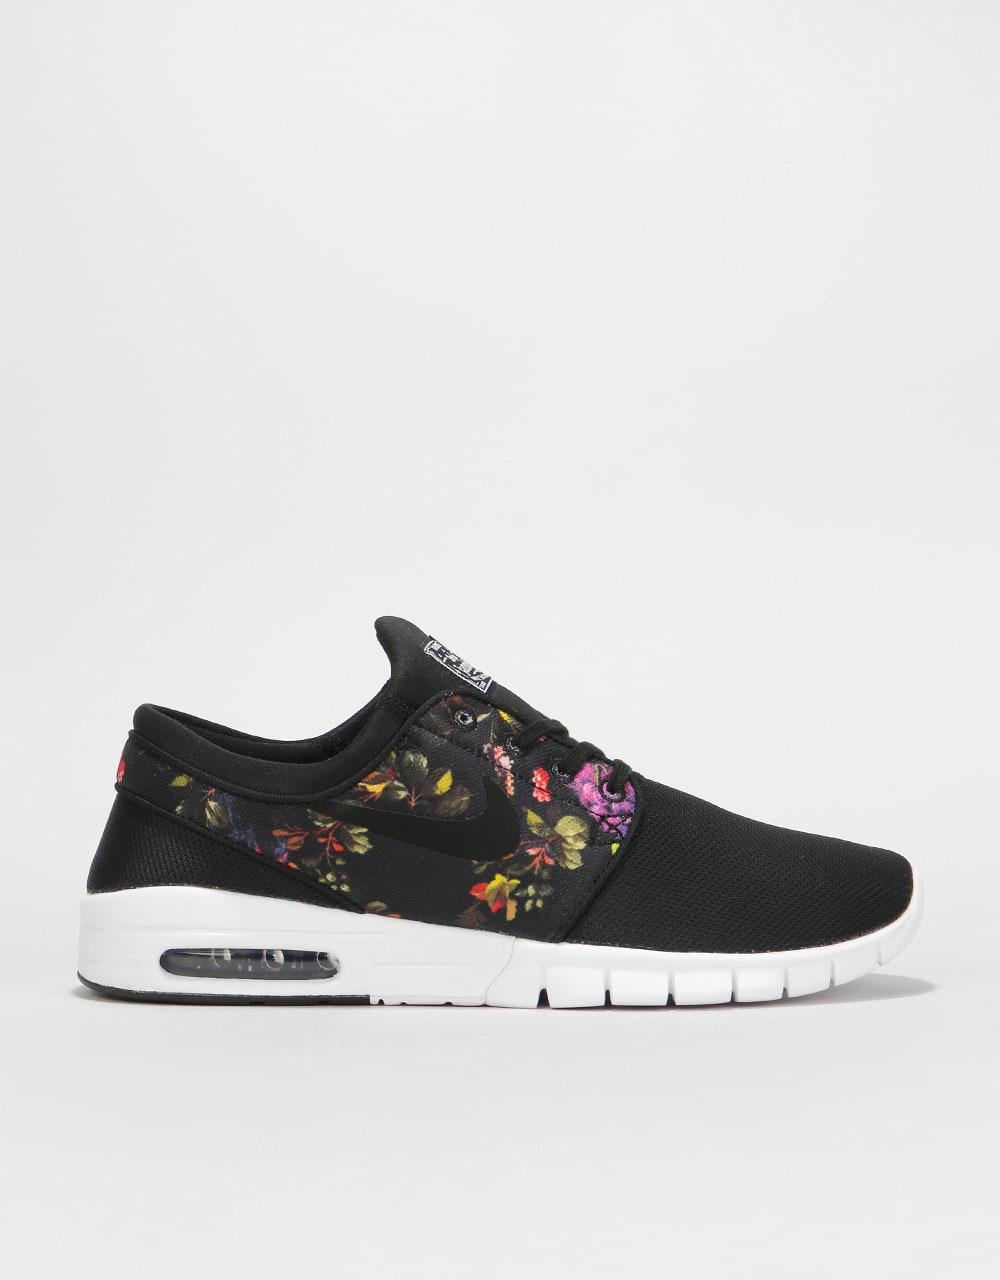 competitive price 79361 0720e Nike SB Stefan Janoski Max Skate Shoes - Black Black-Multi-Color   Mens  Runners   Trainers, Sneakers   Footwear   Route One